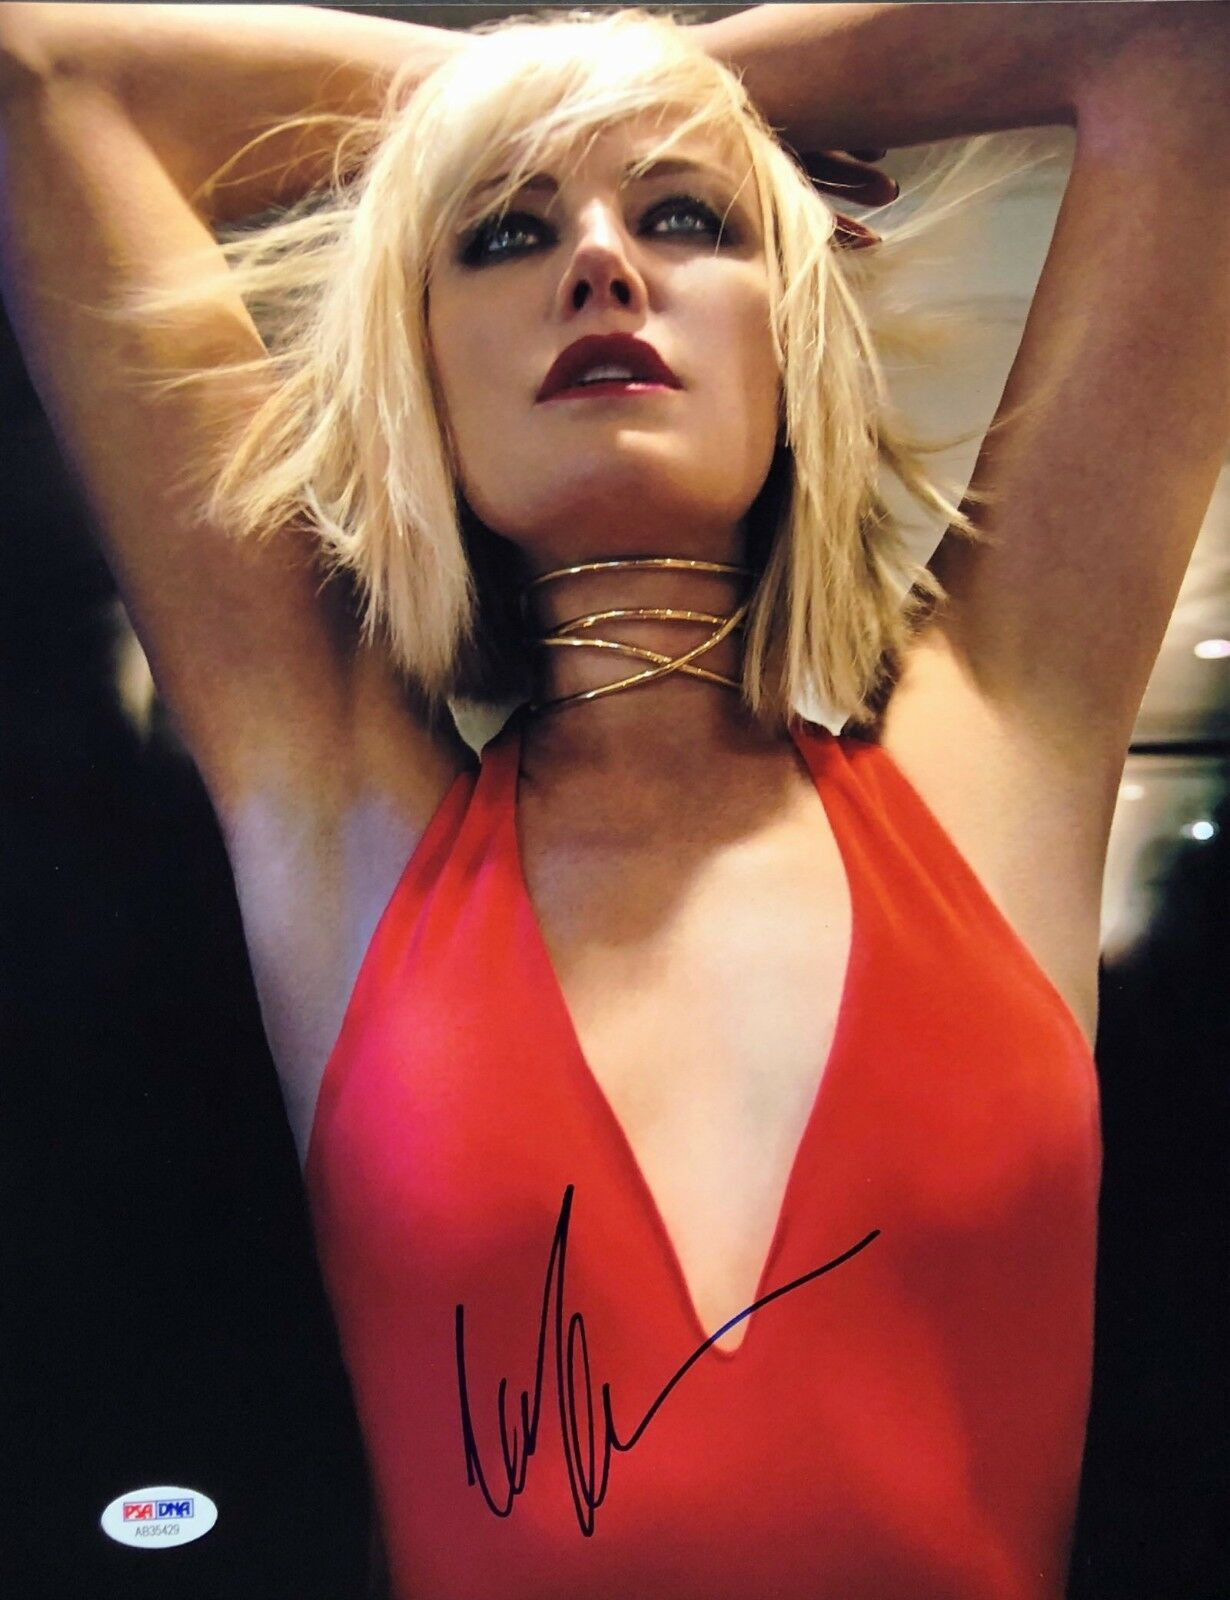 Malin Akerman Signed 11x14 Photo *Watchmen *Silk Spectra *Actress *Model PSA